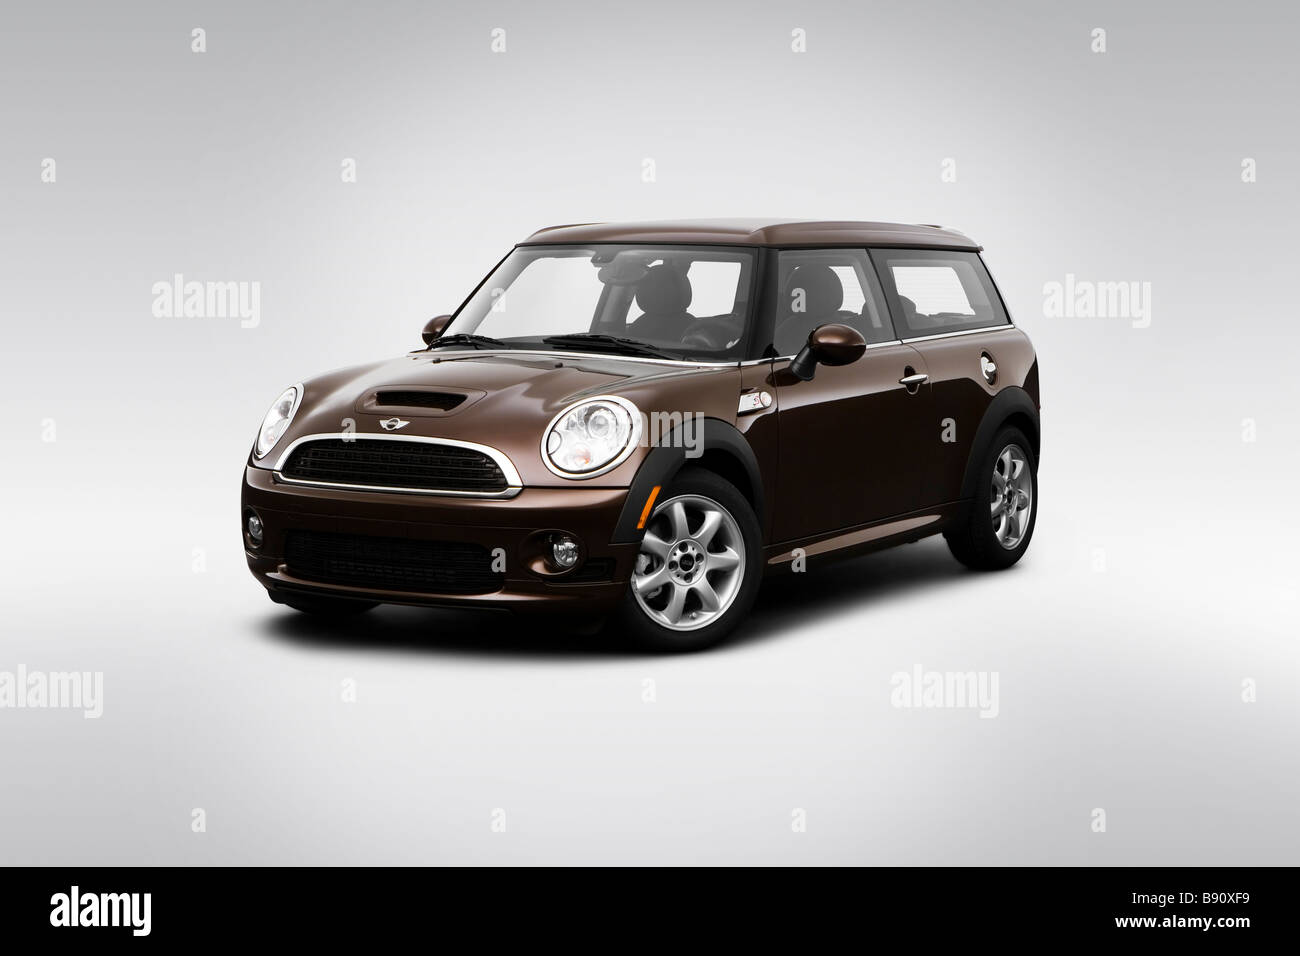 mini car front stock photos mini car front stock images. Black Bedroom Furniture Sets. Home Design Ideas